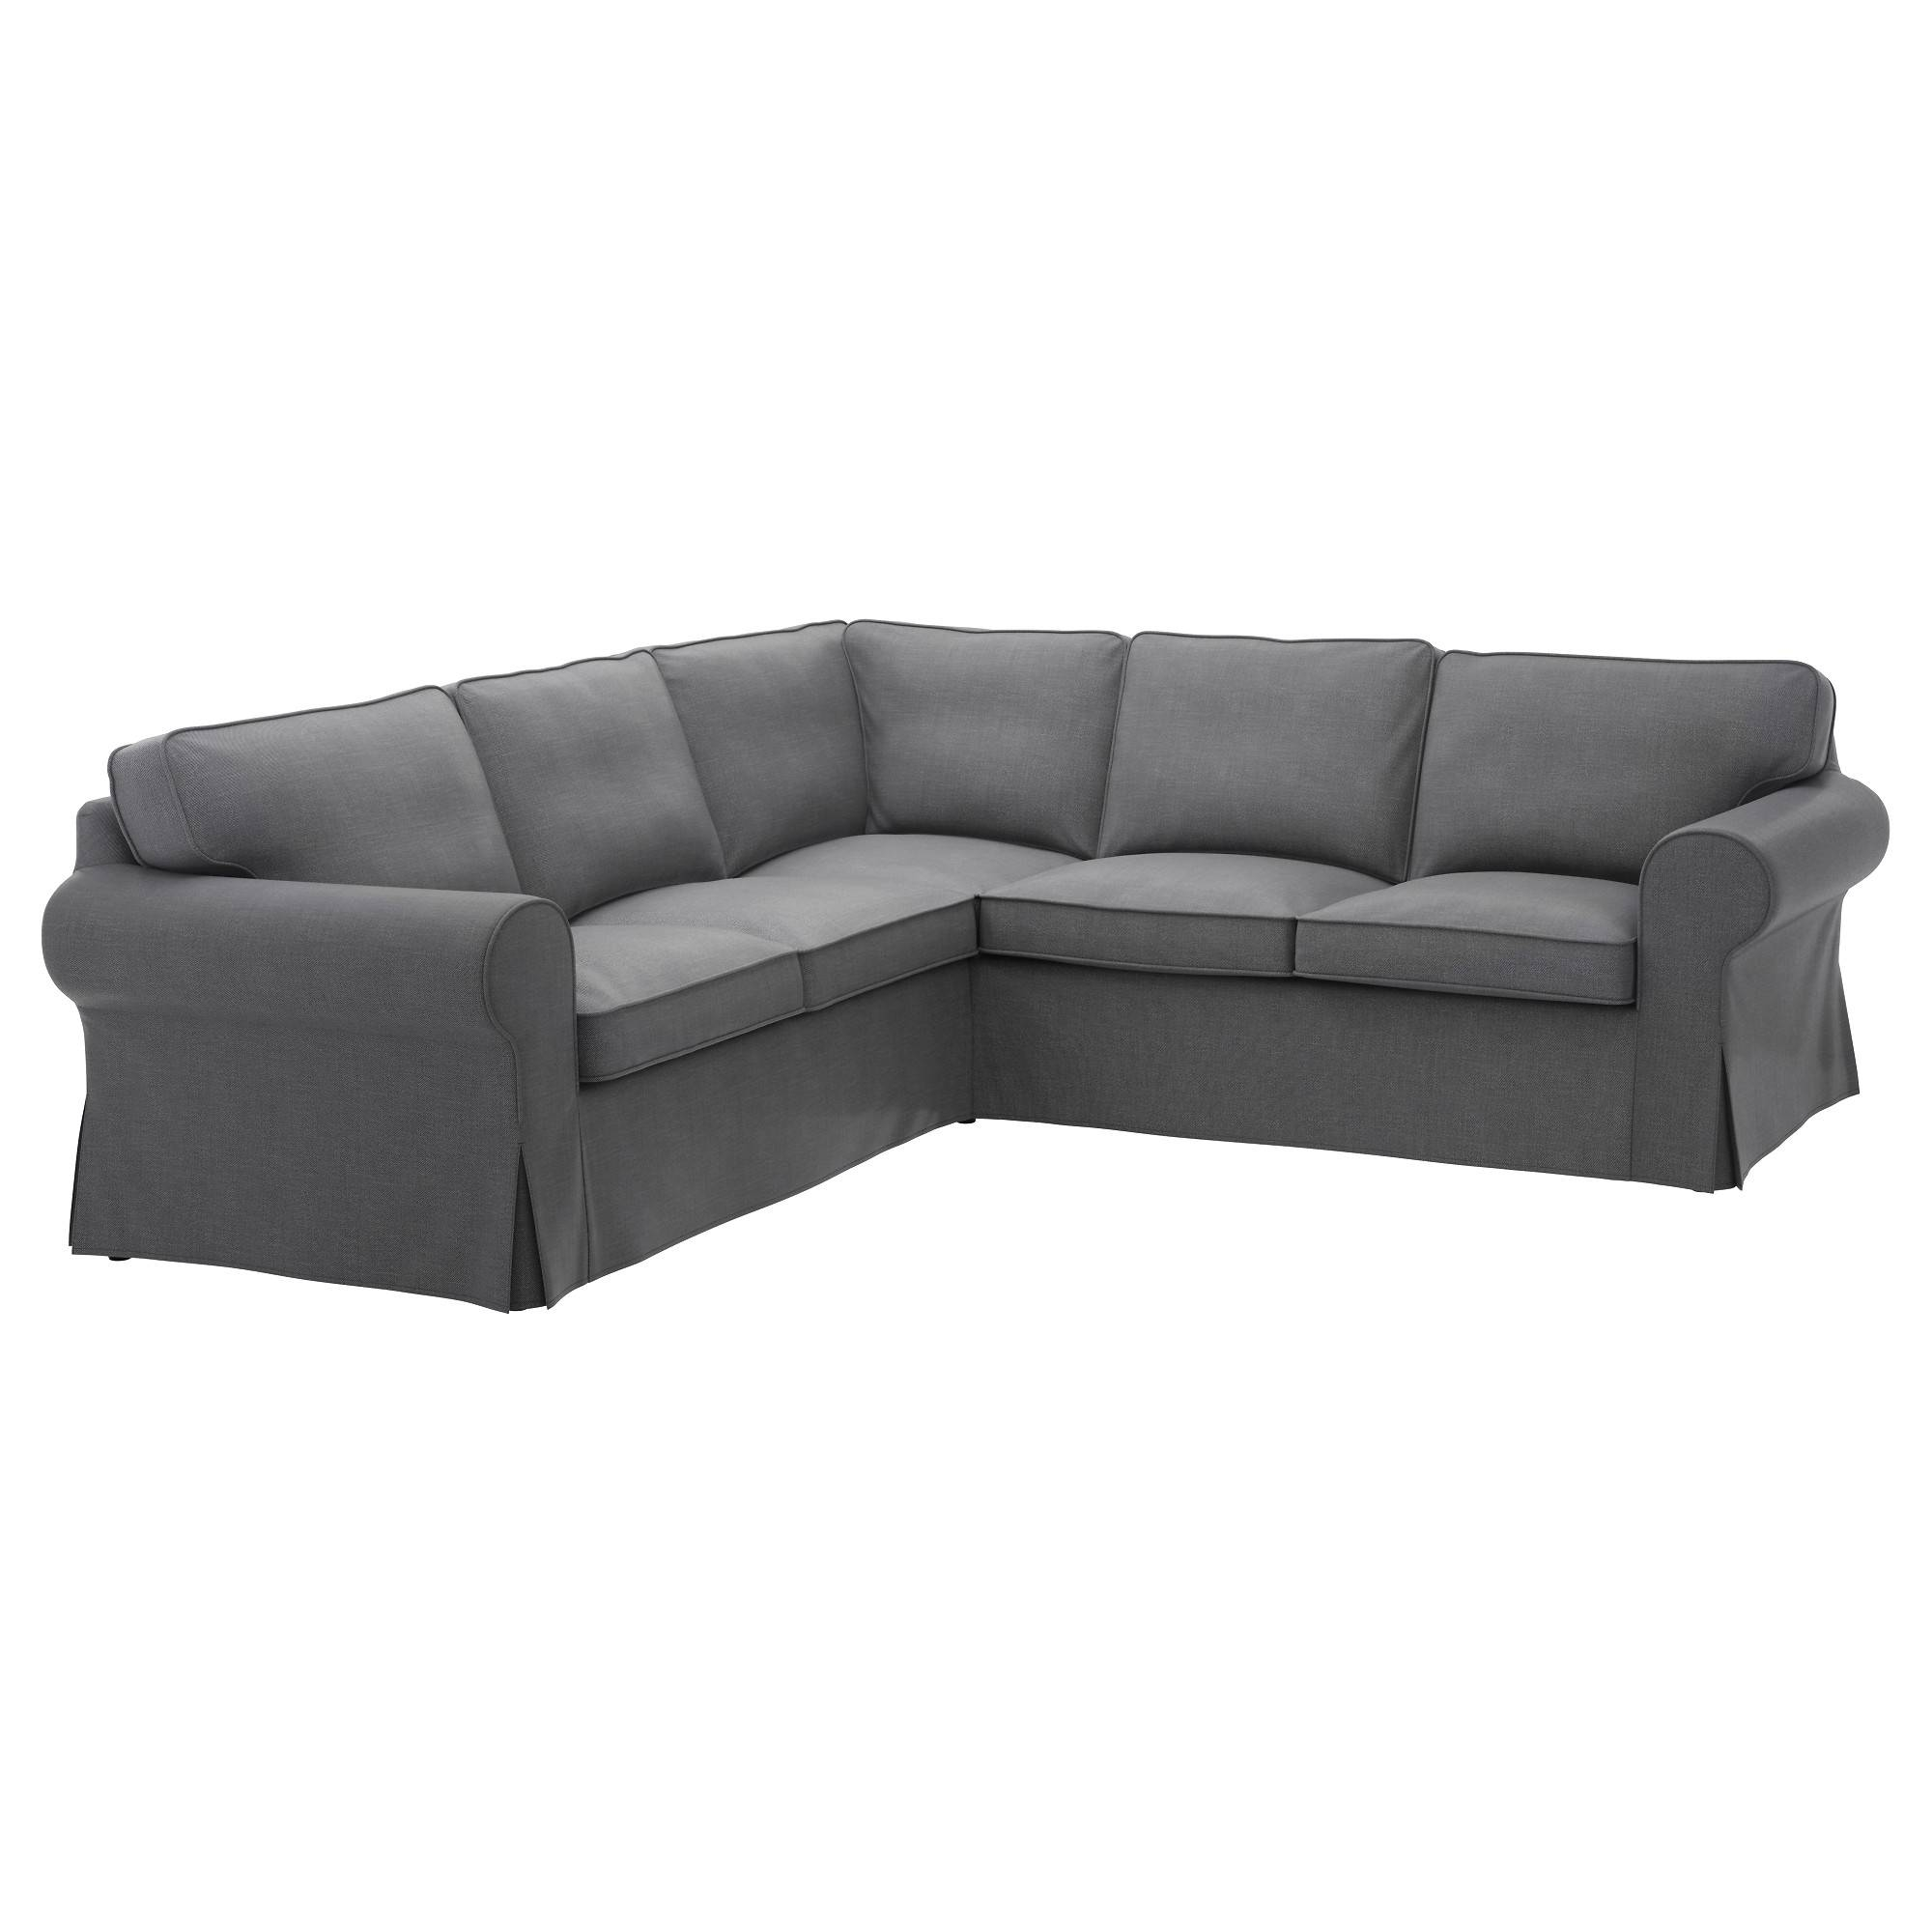 Ektorp Sectional, 4 Seat Corner – Lofallet Beige – Ikea In Sleeper Sofa Sectional Ikea (View 5 of 25)